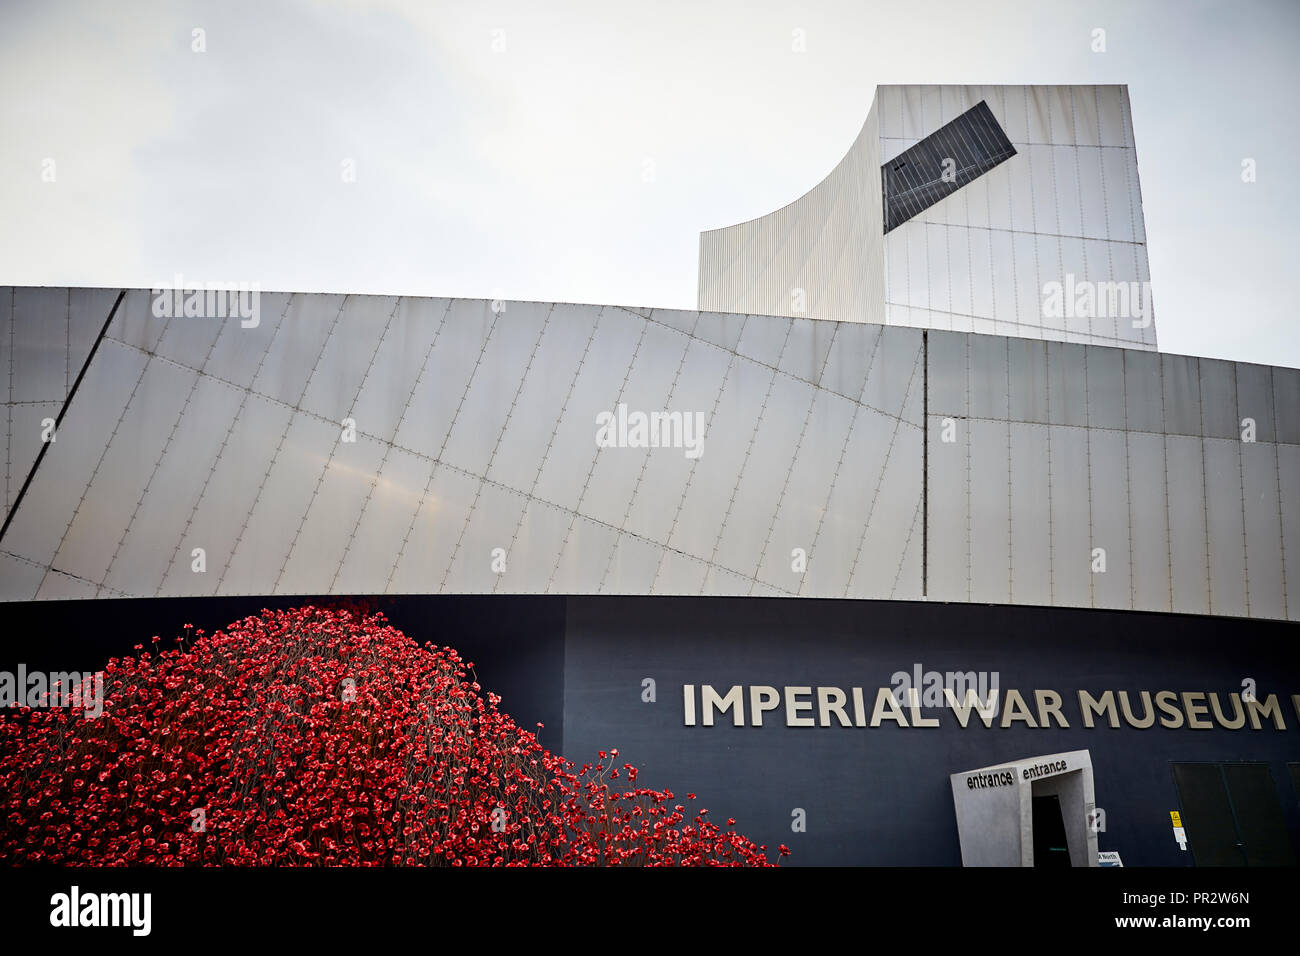 IWMN Wave cascade several thousand handmade ceramic poppies sculptures by artist Paul Cummins and designer Tom Piper at  Imperial War Museum North - Stock Image